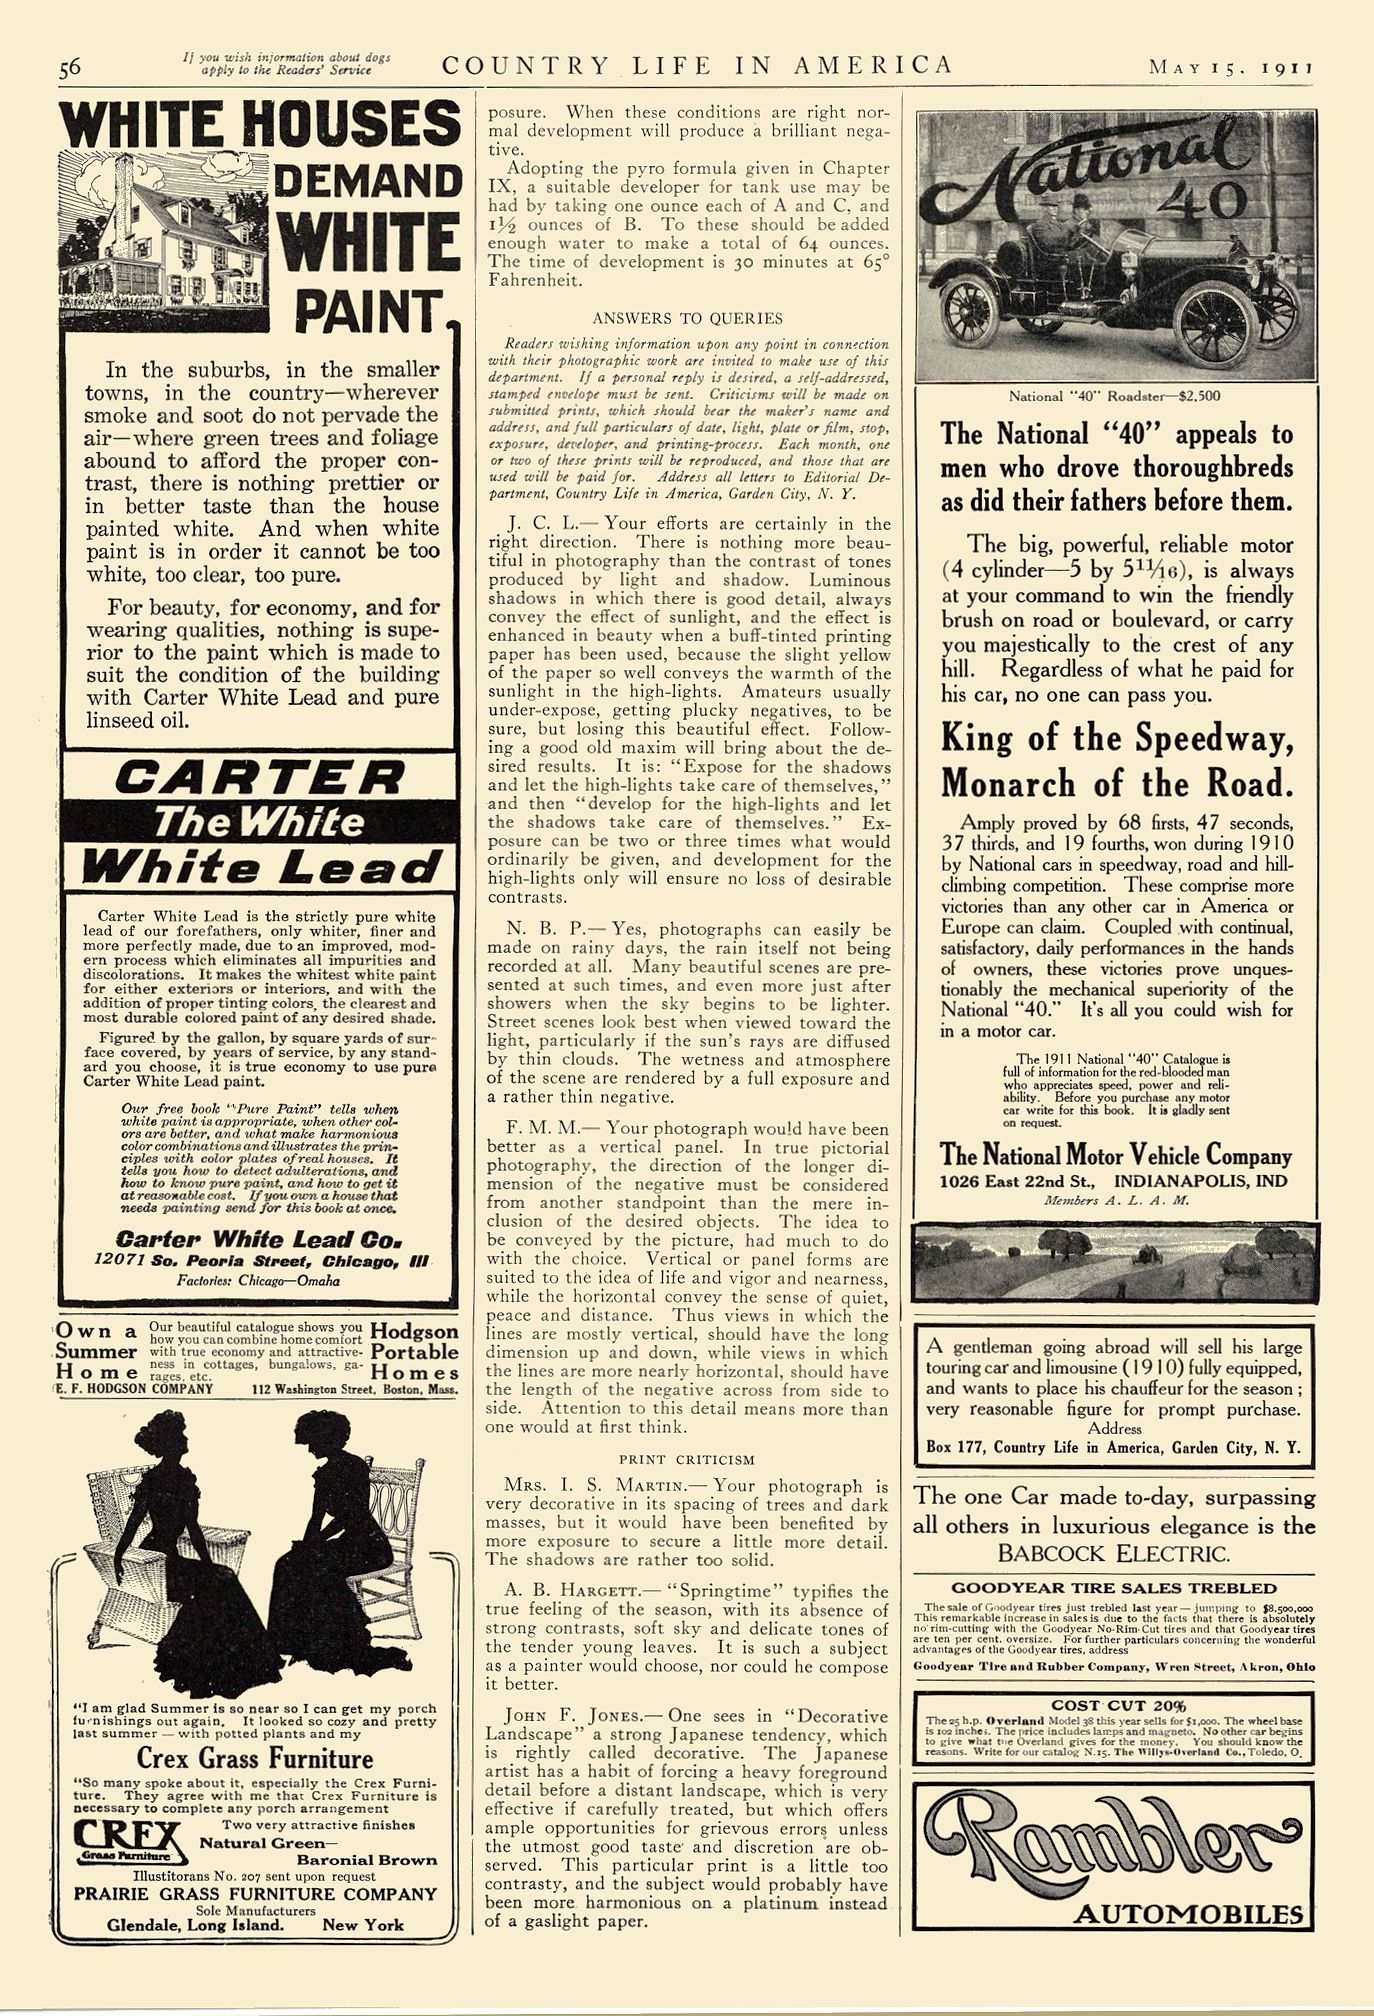 1911 5 15 NATIONAL National 40 King of the Speedway, Monarch of the Road. The National Motor Vehicle Company Indianapolis, IND Country Life In America May 15, 1911 9.5″x13.5″ page 56